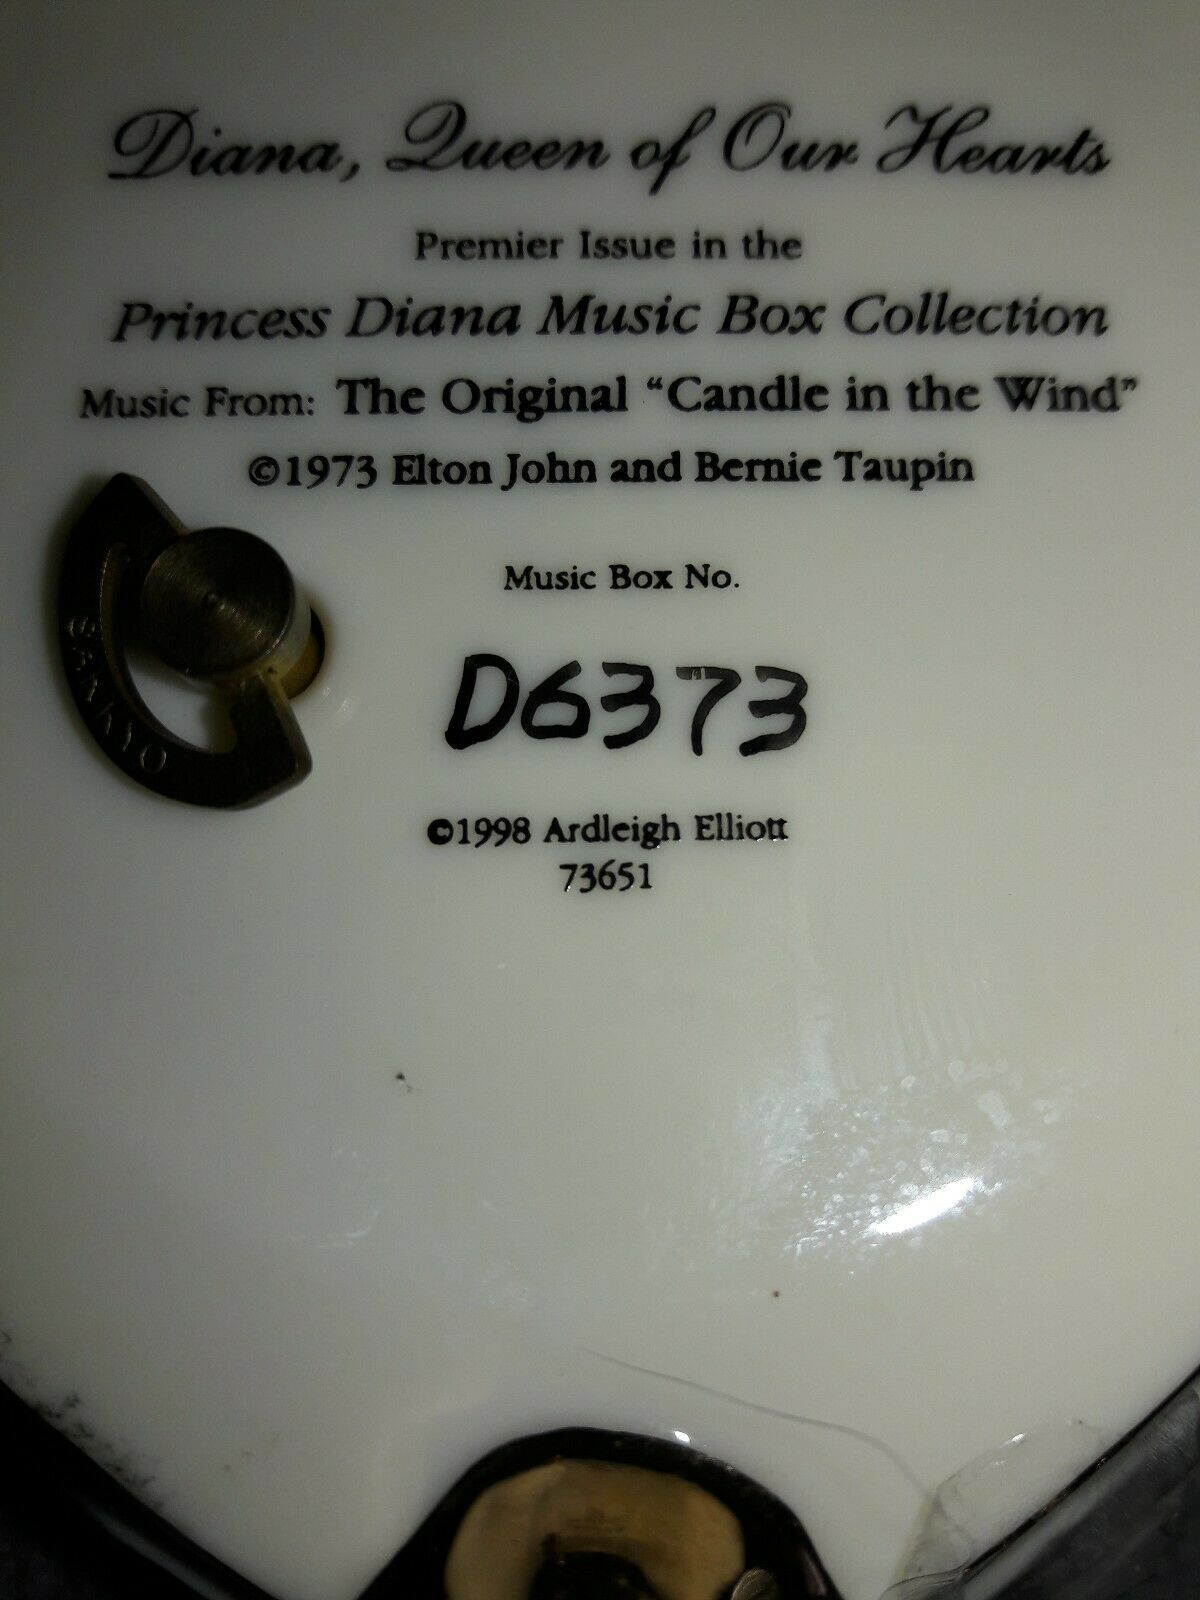 Ardleigh Elliot 1998 - Princess Diana Trinket Music Box - Candle In The Wind 73'